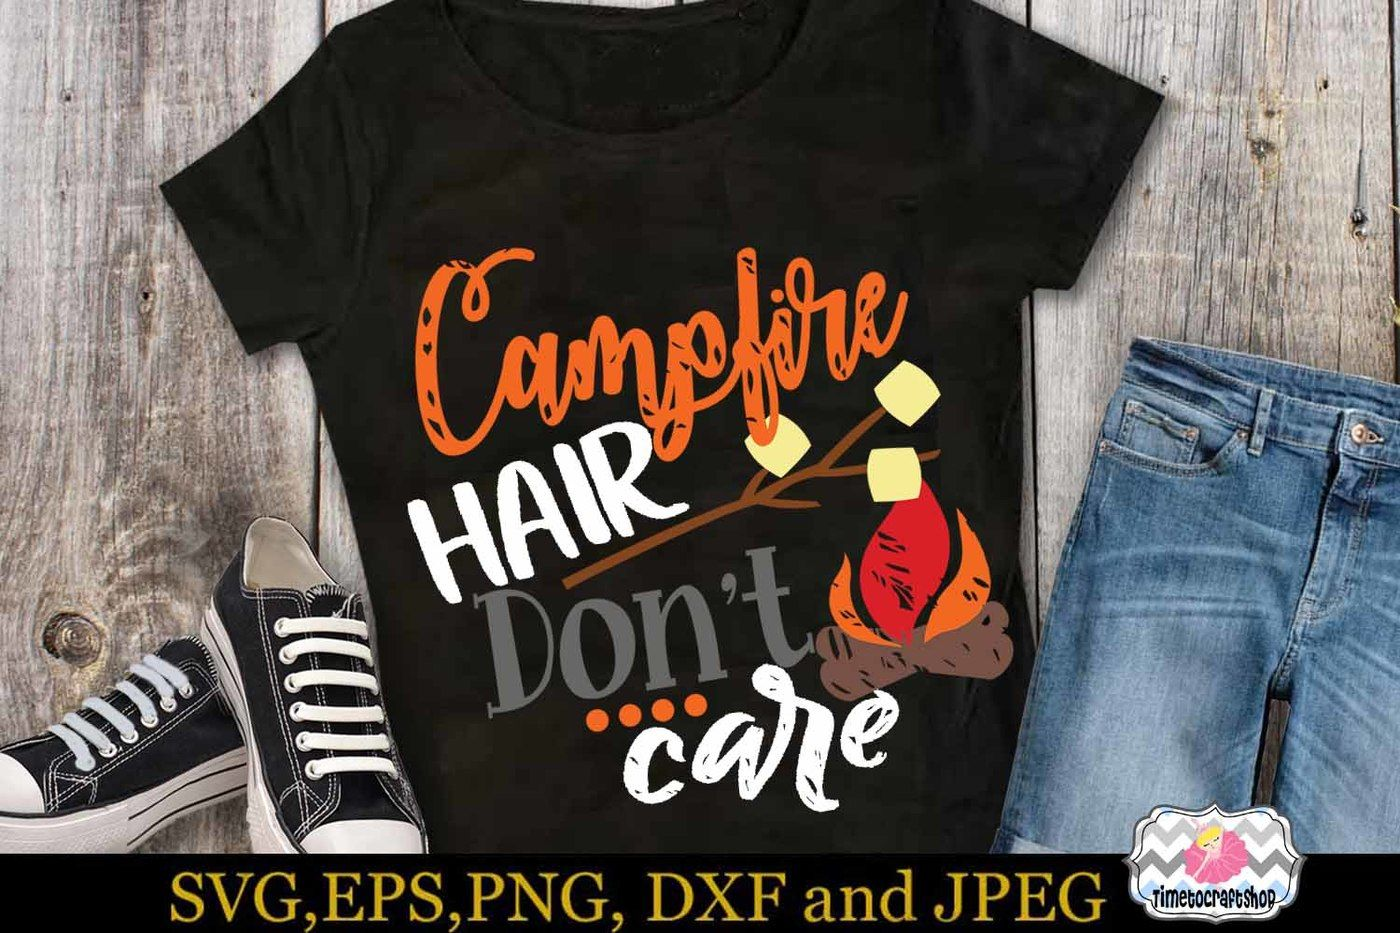 Svg Dxf Eps Png Cutting Files The Campfire Hair Don T Care By